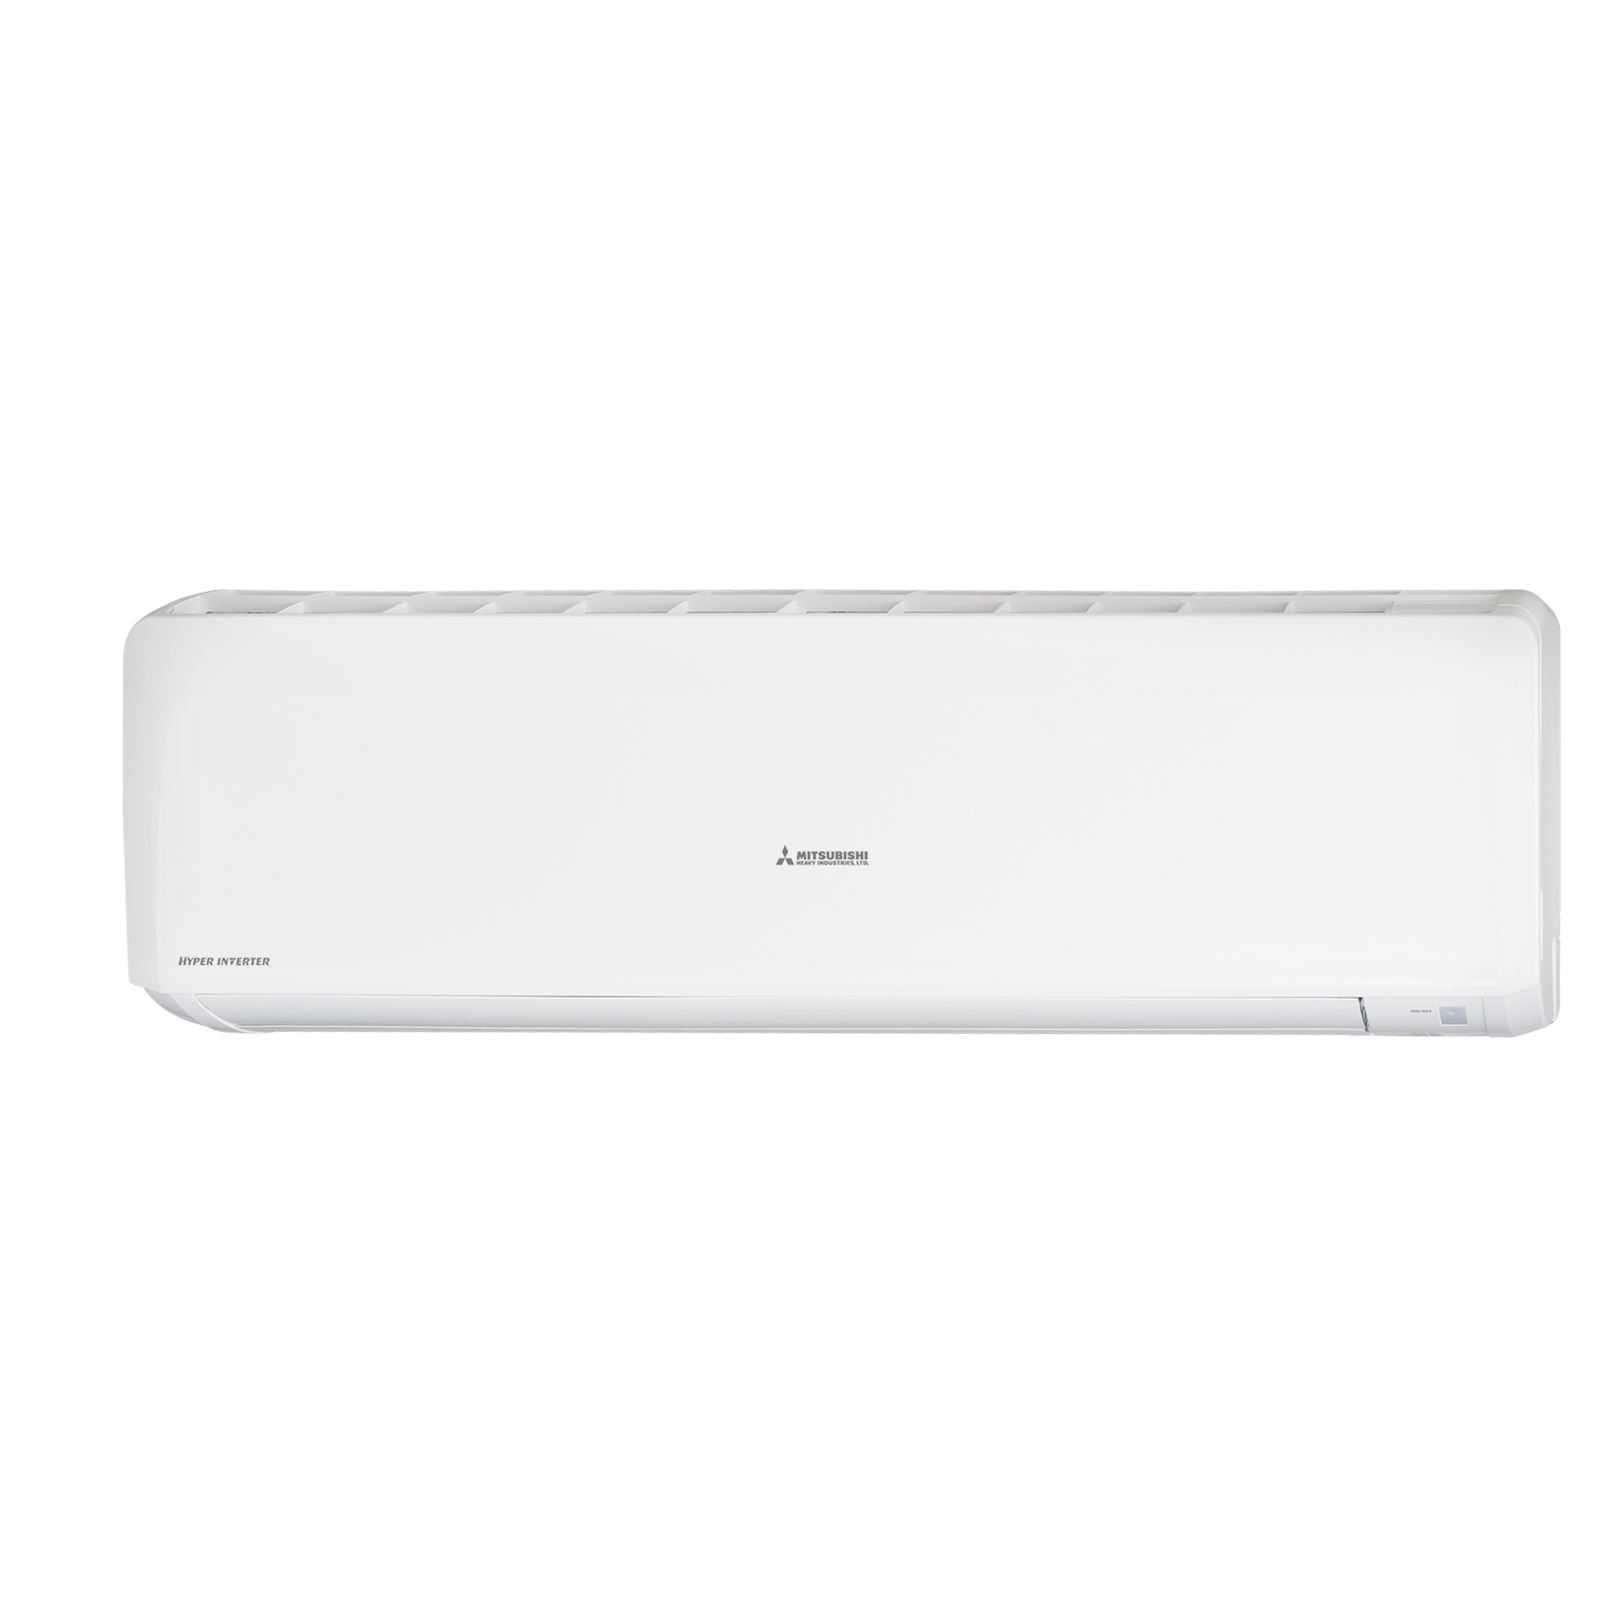 Mitsubishi Bronte 8.0kW Reverse Cycle Split System Air Conditioner